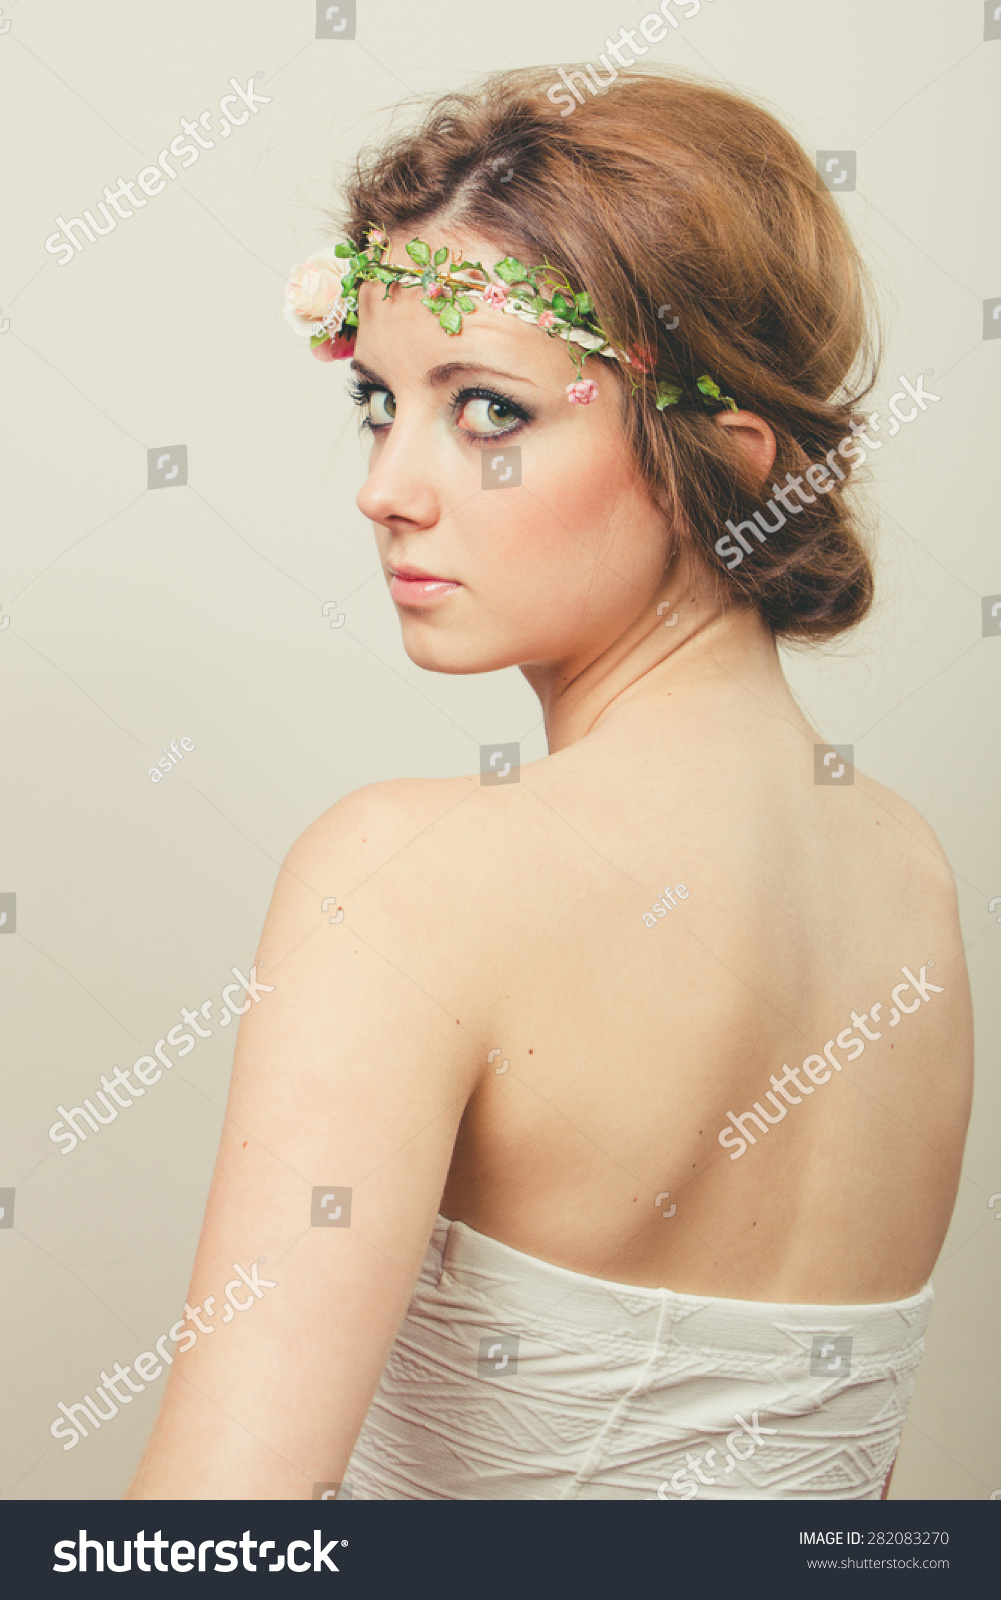 Beautiful Blond Woman Hair Tied Back Stock Photo Edit Now